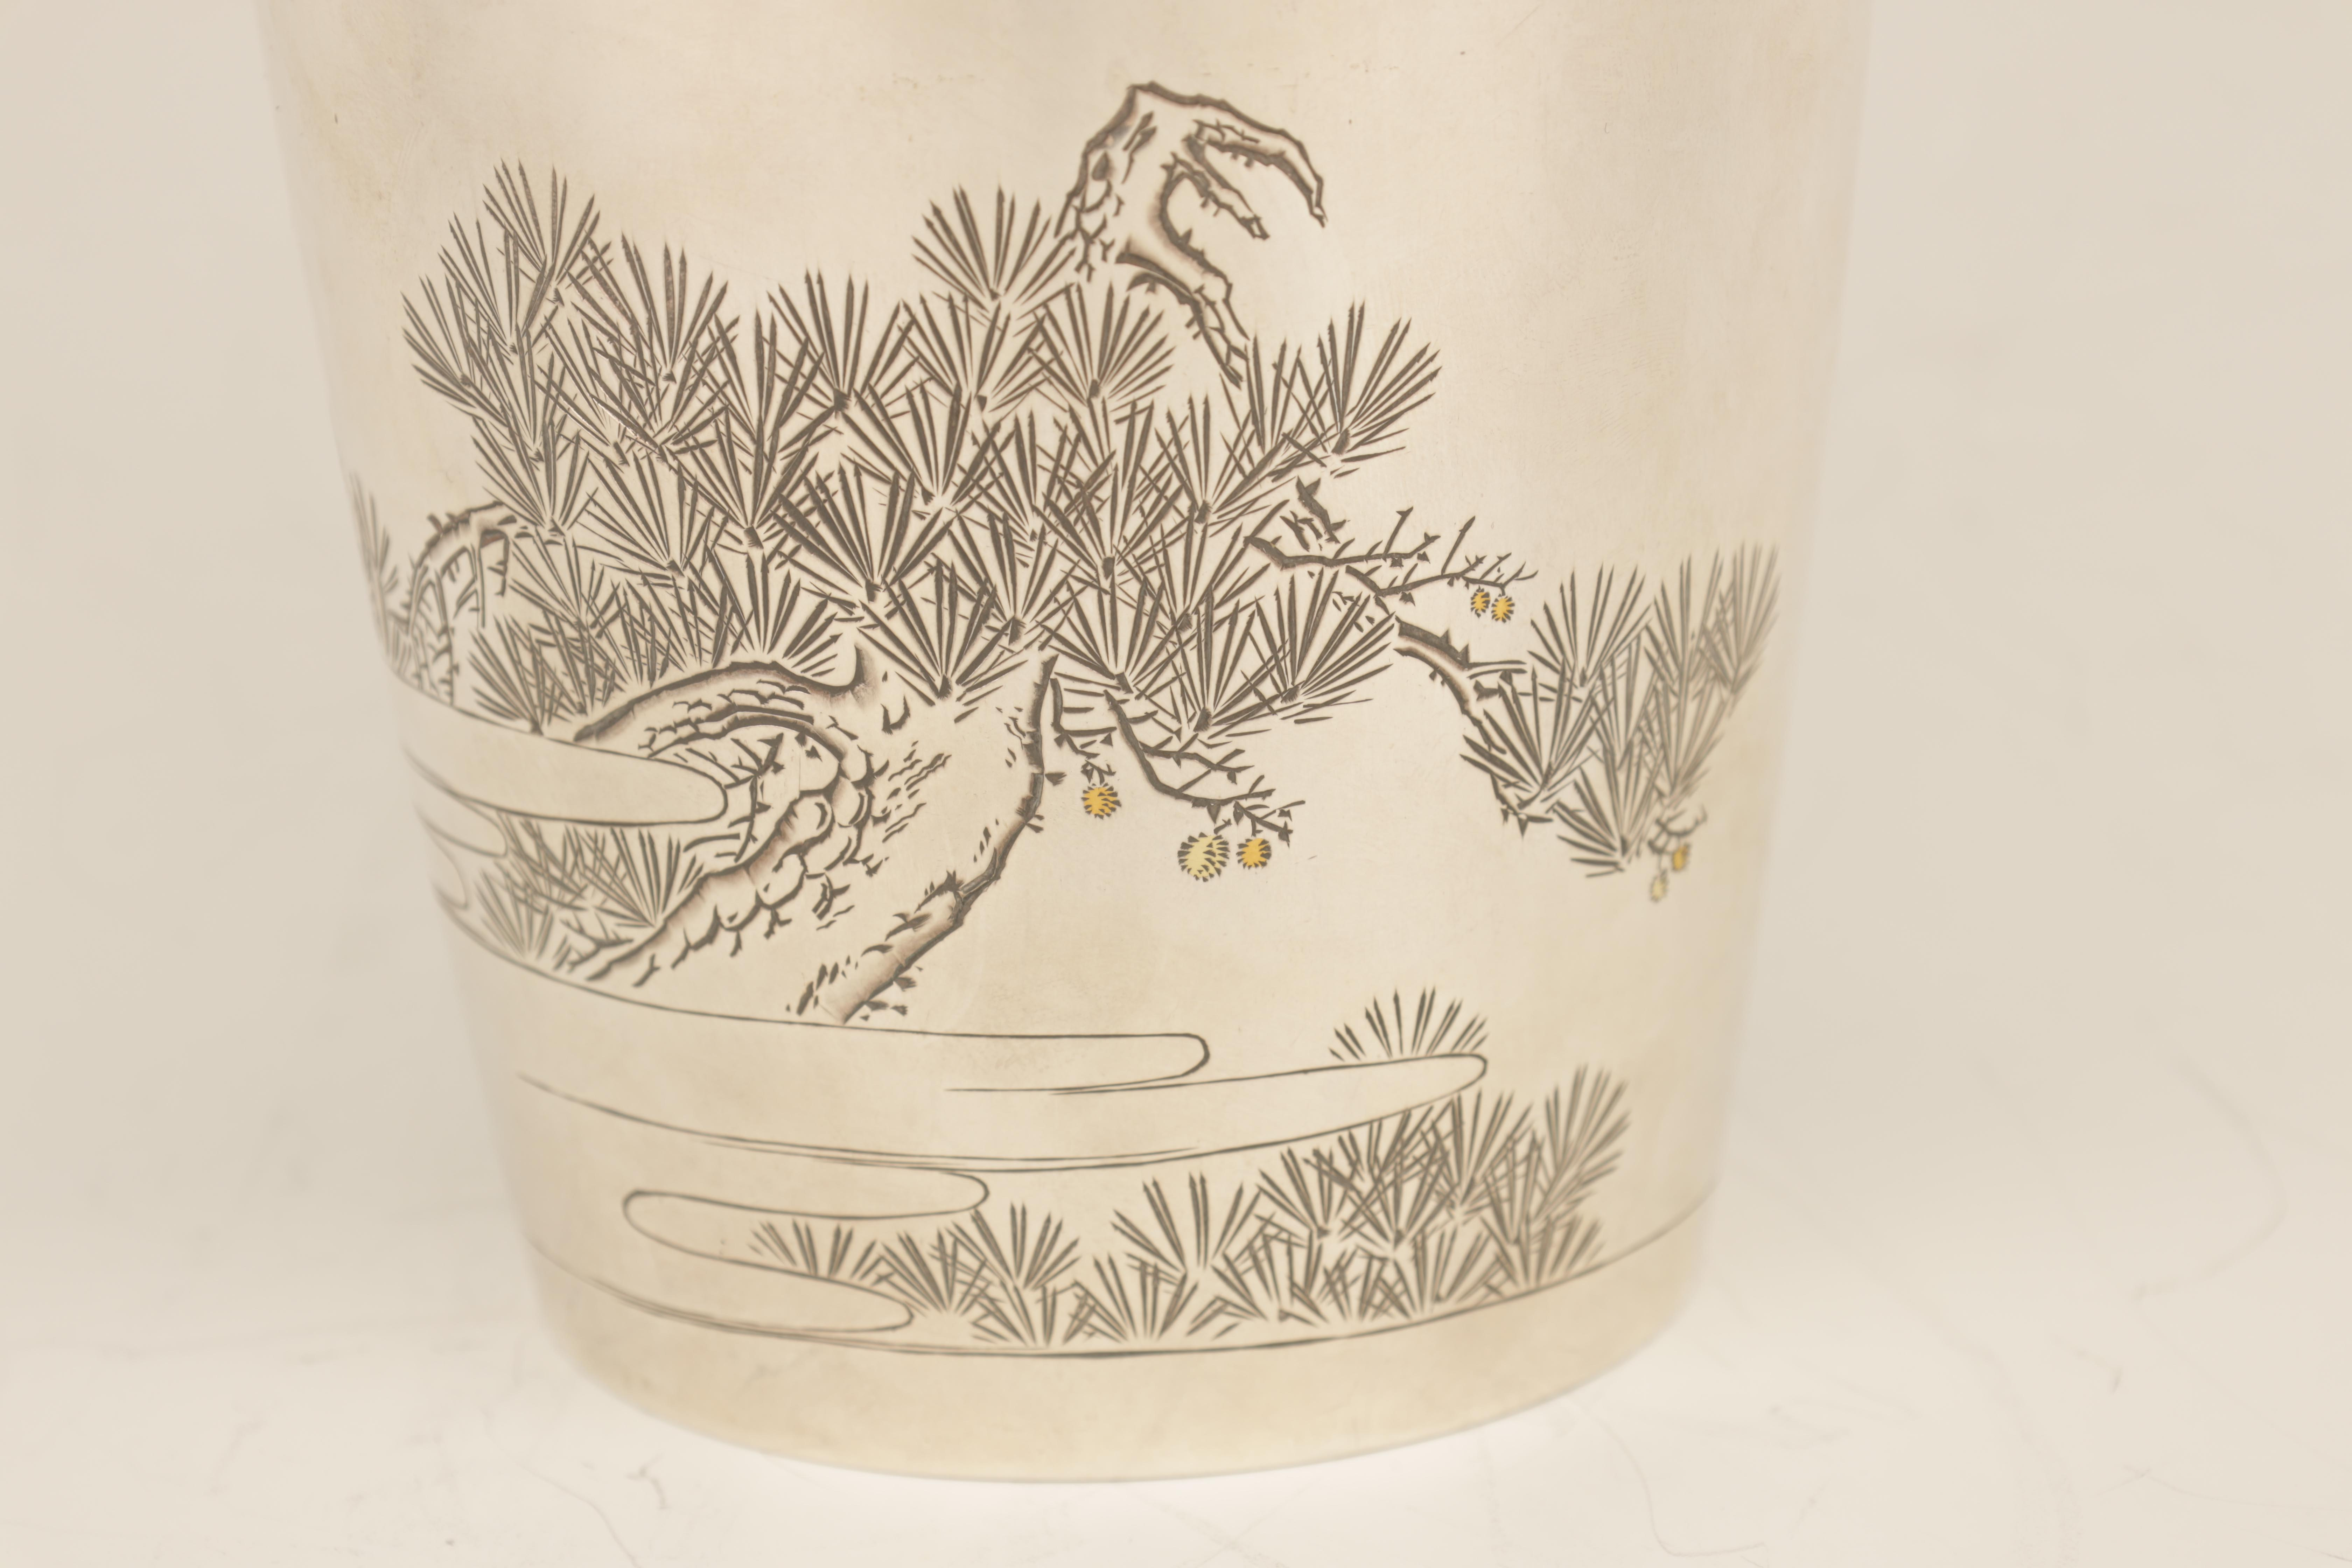 A LARGE JAPANESE MEIJI PERIOD SILVER VASE embellished with gilt highlights and engraved scene of - Image 3 of 6